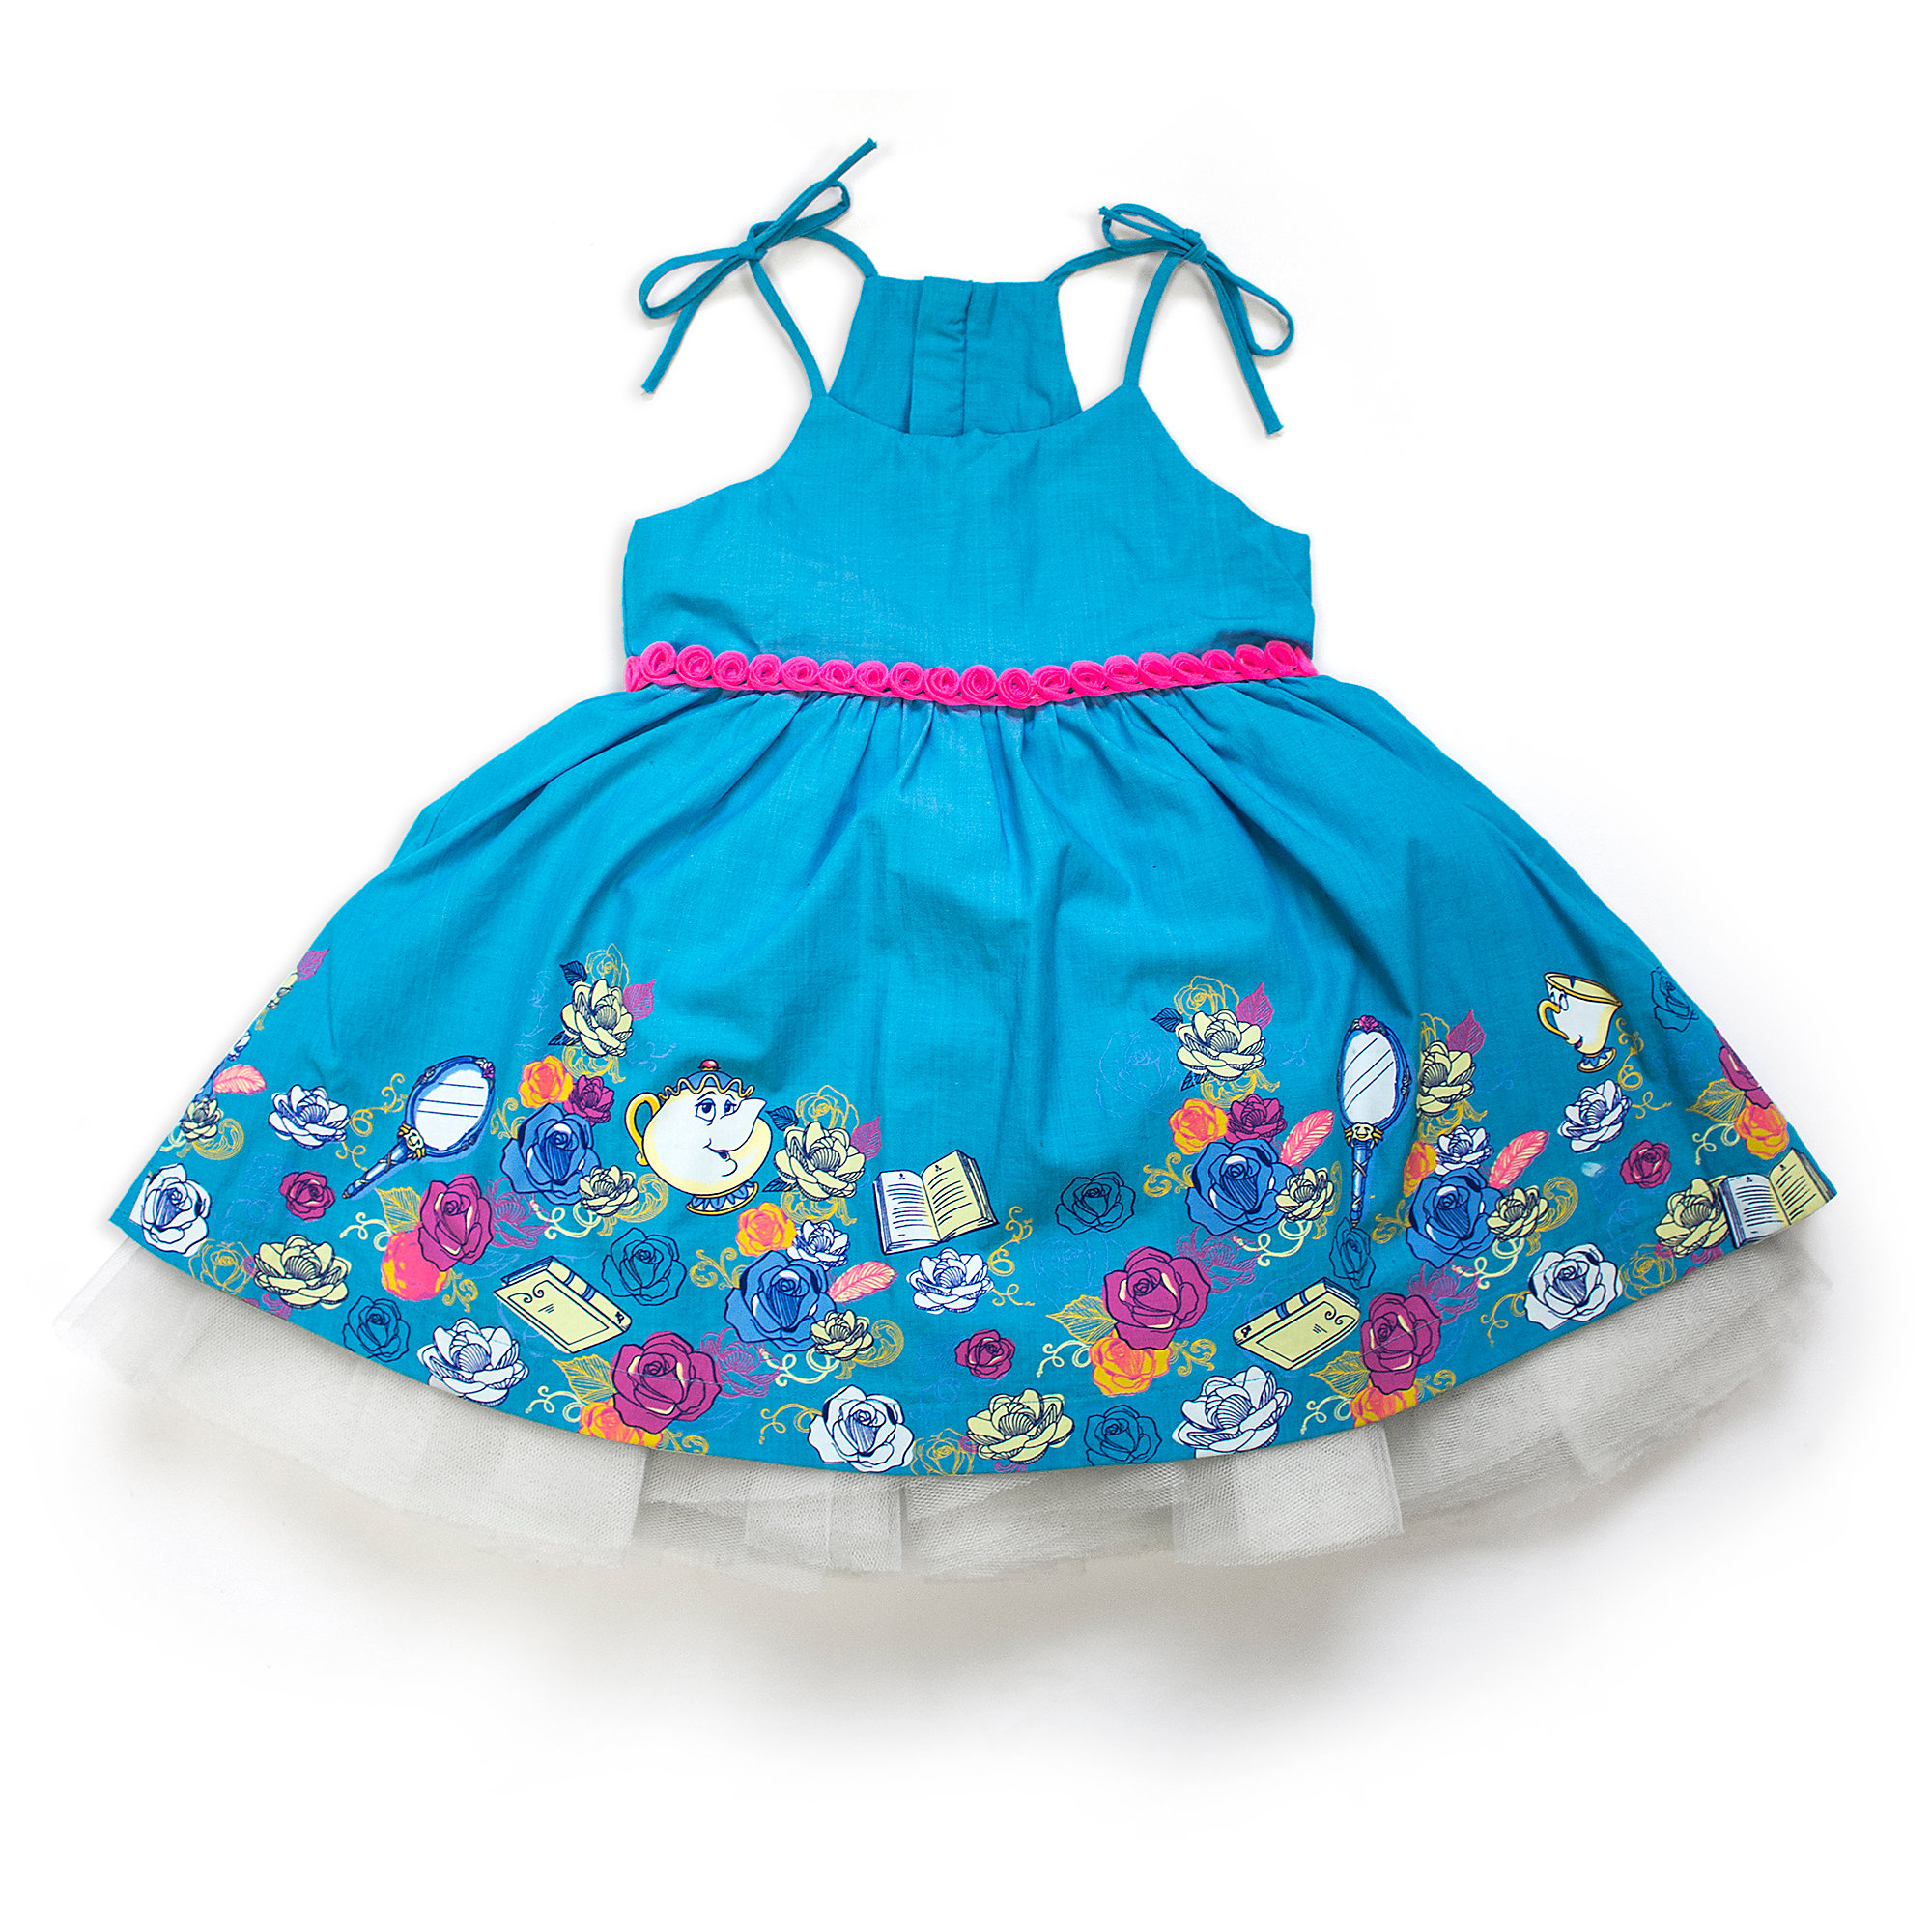 Beauty and the Beast Tutu Dress for Girls by Tutu Couture